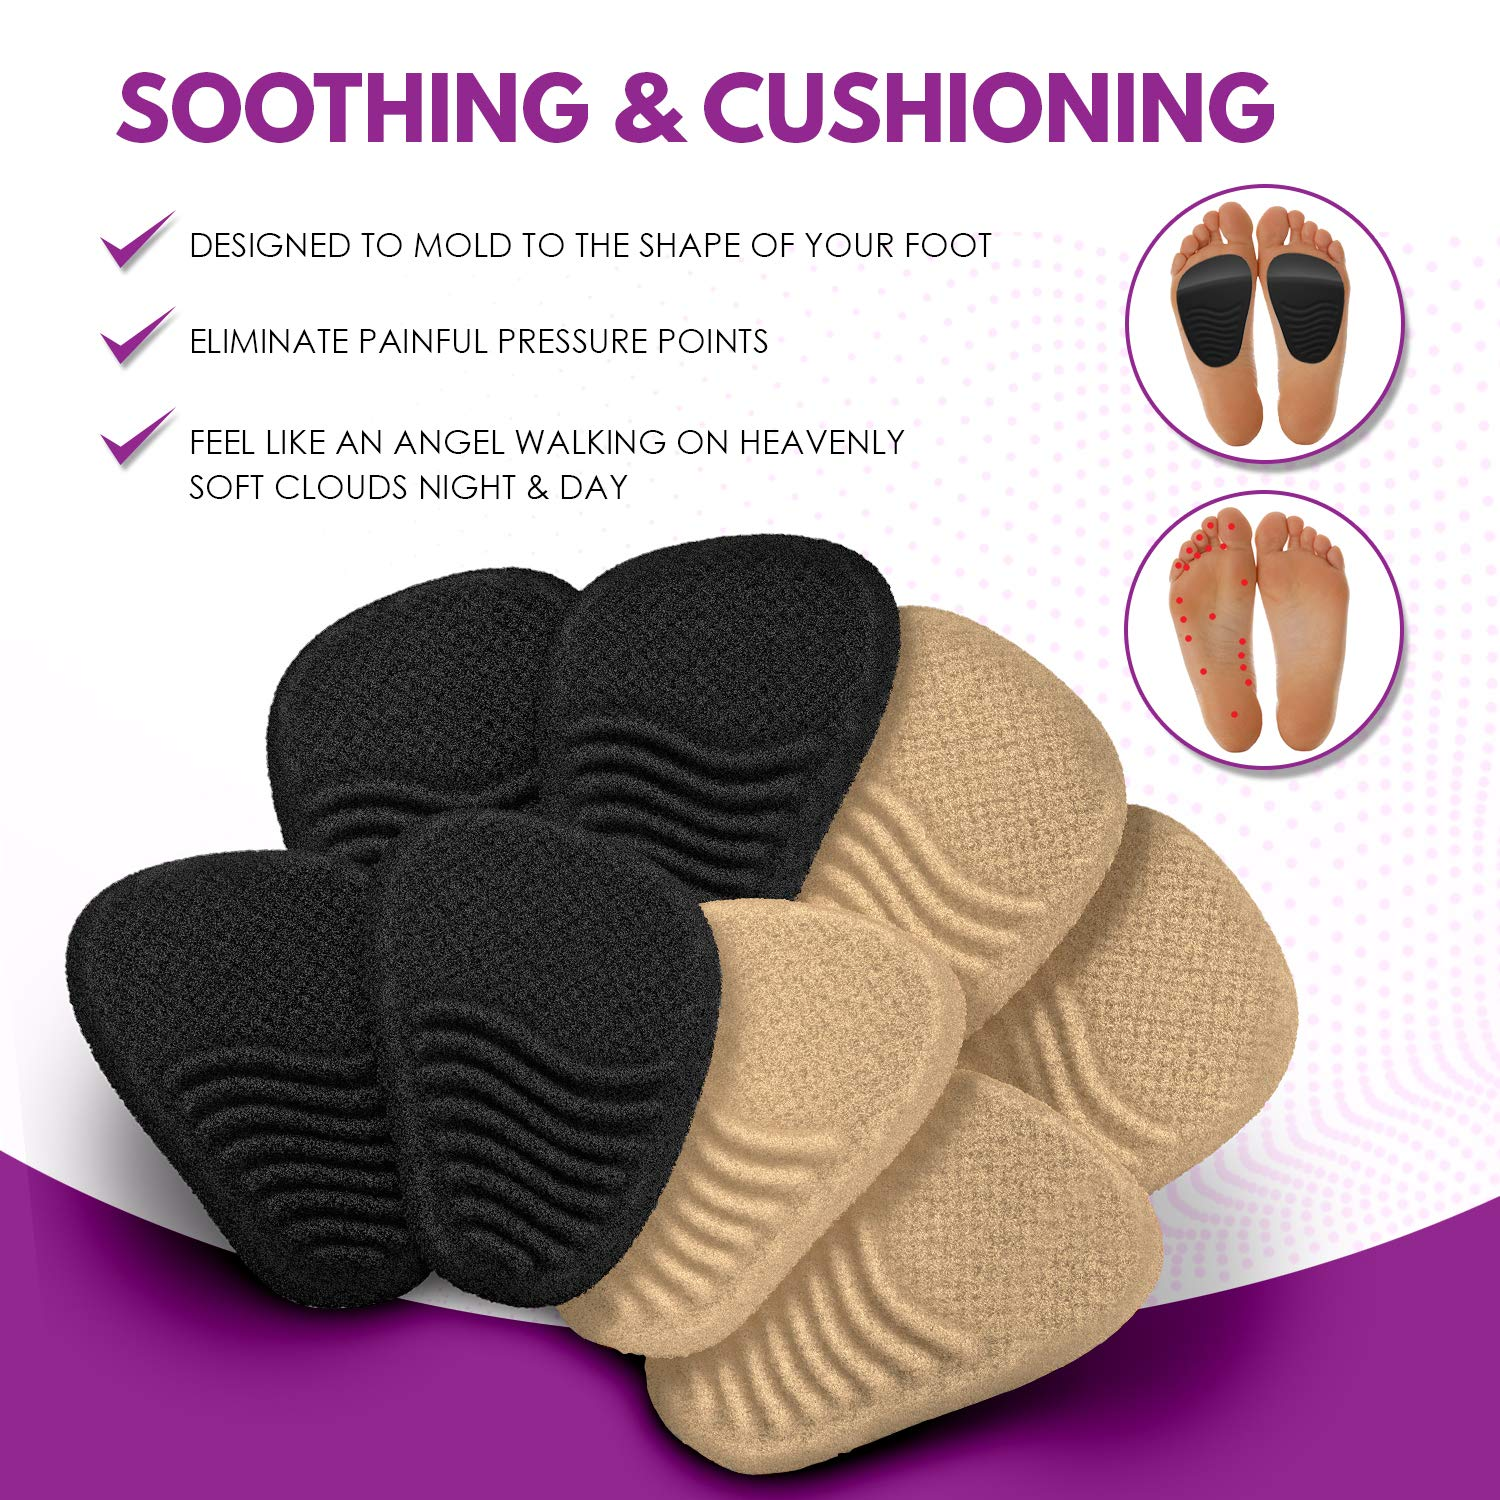 Metatarsal Pads for Women (4 Pairs: 8 Pieces) - Ball of Foot Cushions and High Heel Shoe Inserts | Protect Your Feet | Pain Relief from Neuroma, Bunions, Blisters, Callus, Metatarsalgia and Forefoot by Chambellan (Image #8)